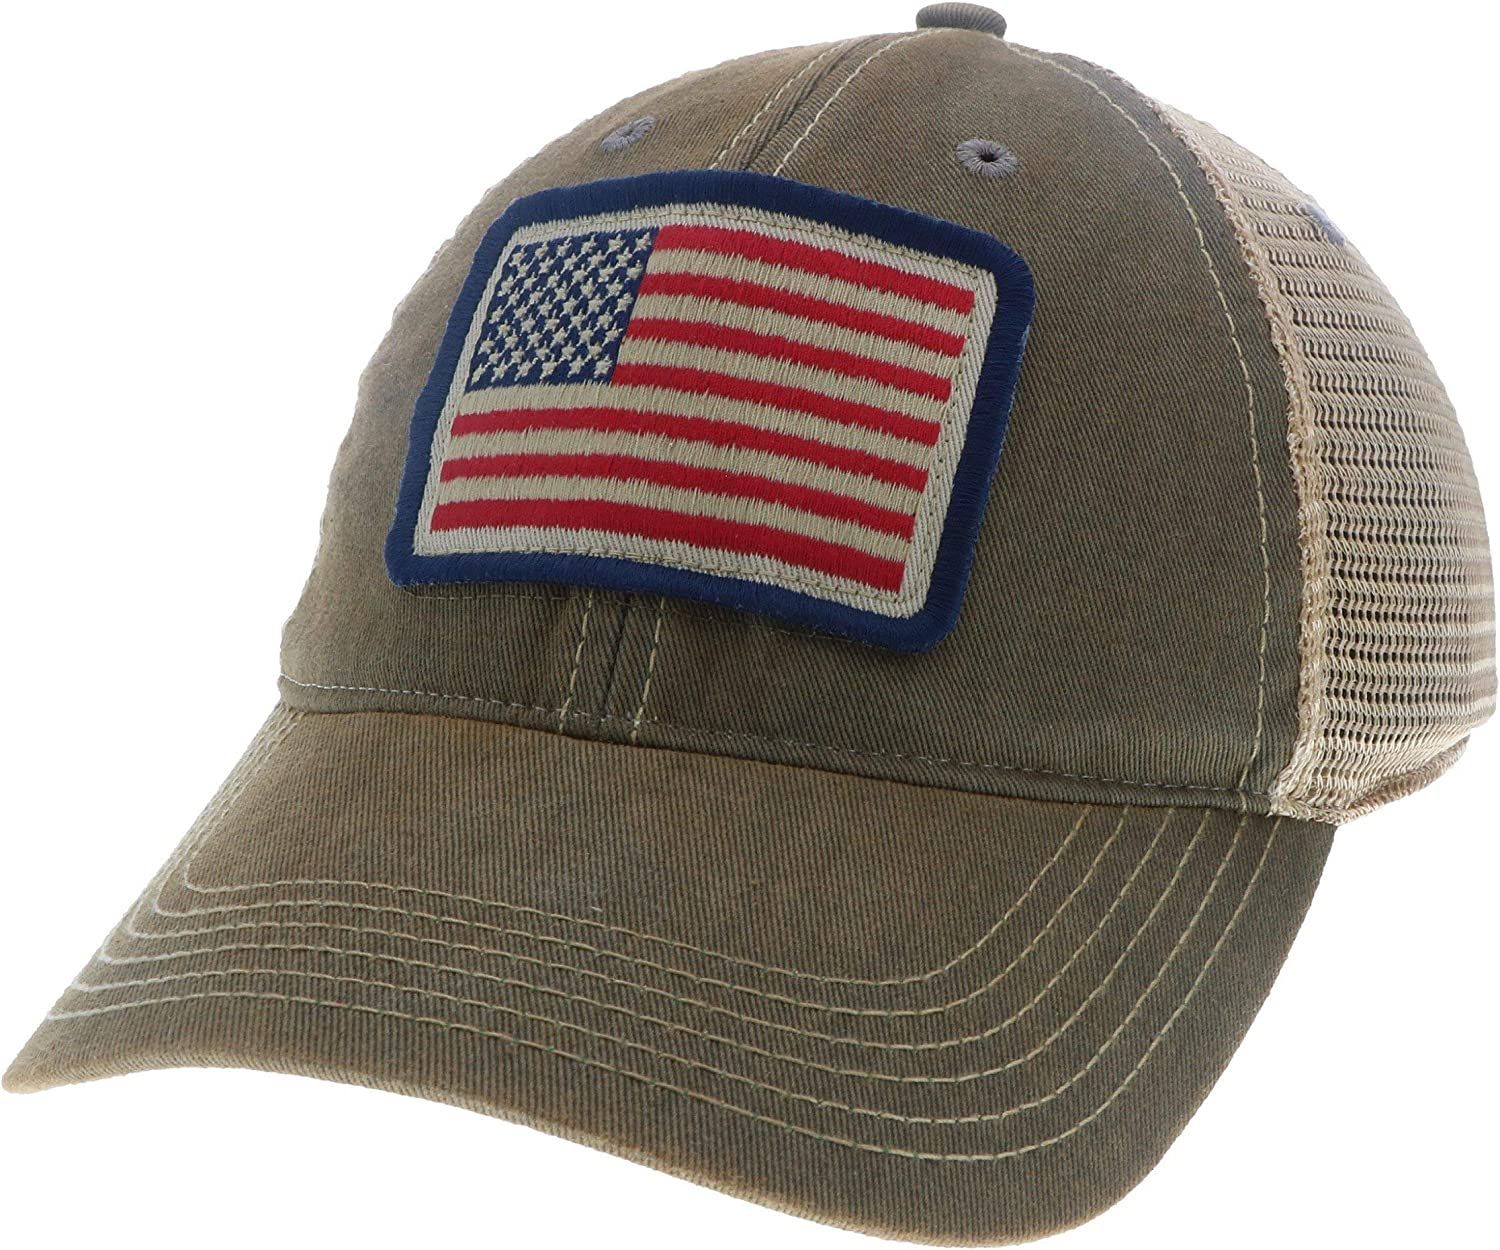 Red Beards Outfitter RBO USA Flag Trucker Hat